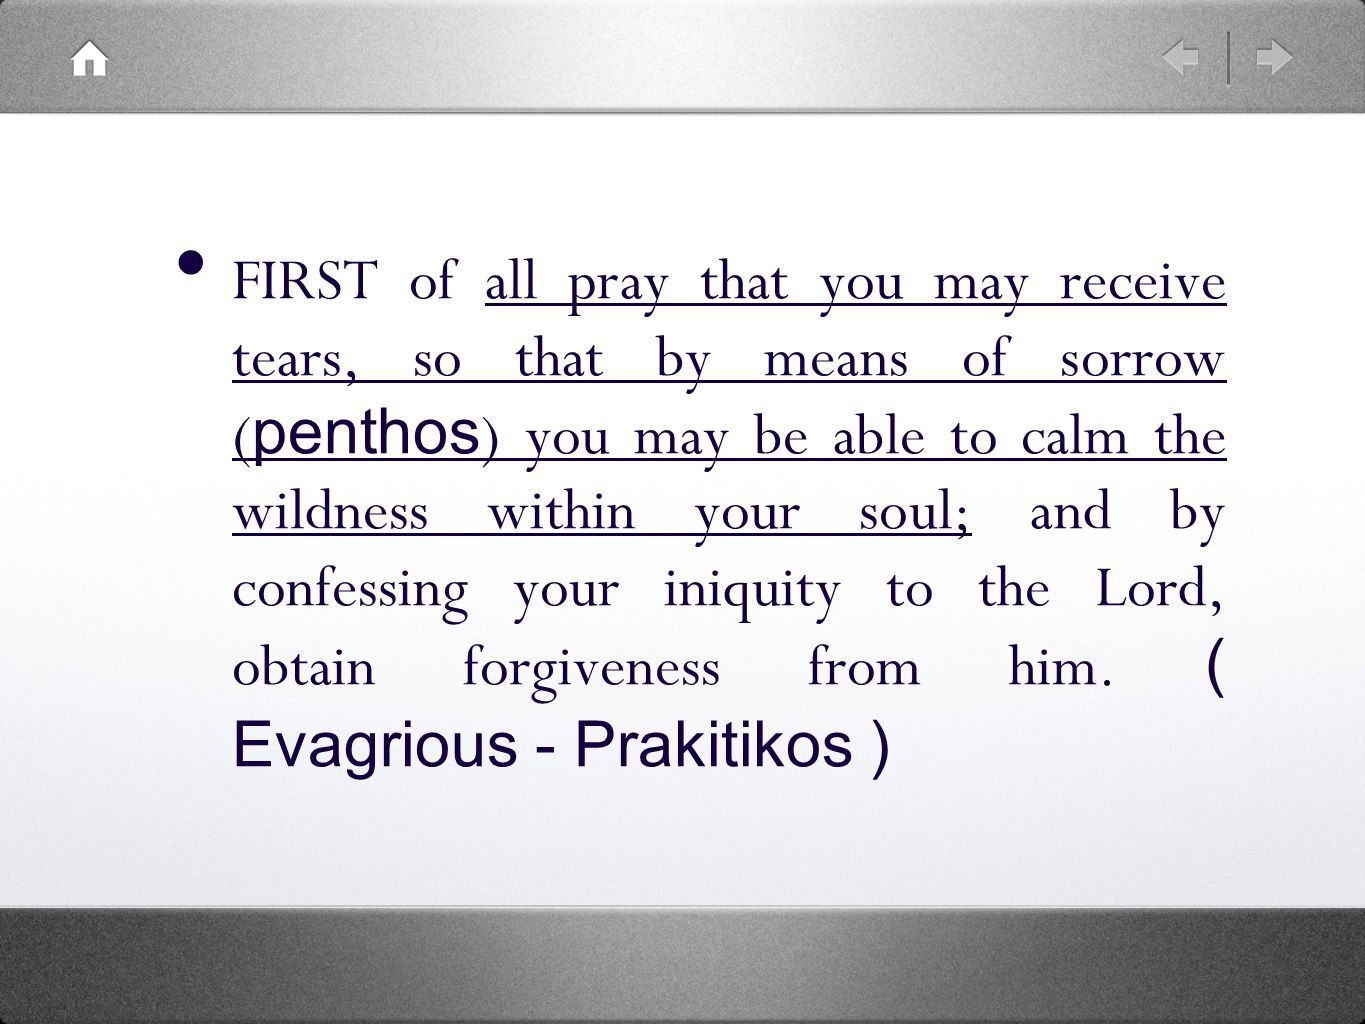 FIRST of all pray that you may receive tears, so that by means of sorrow ( penthos ) you may be able to calm the wildness within your soul; and by confessing your iniquity to the Lord, obtain forgiveness from him.